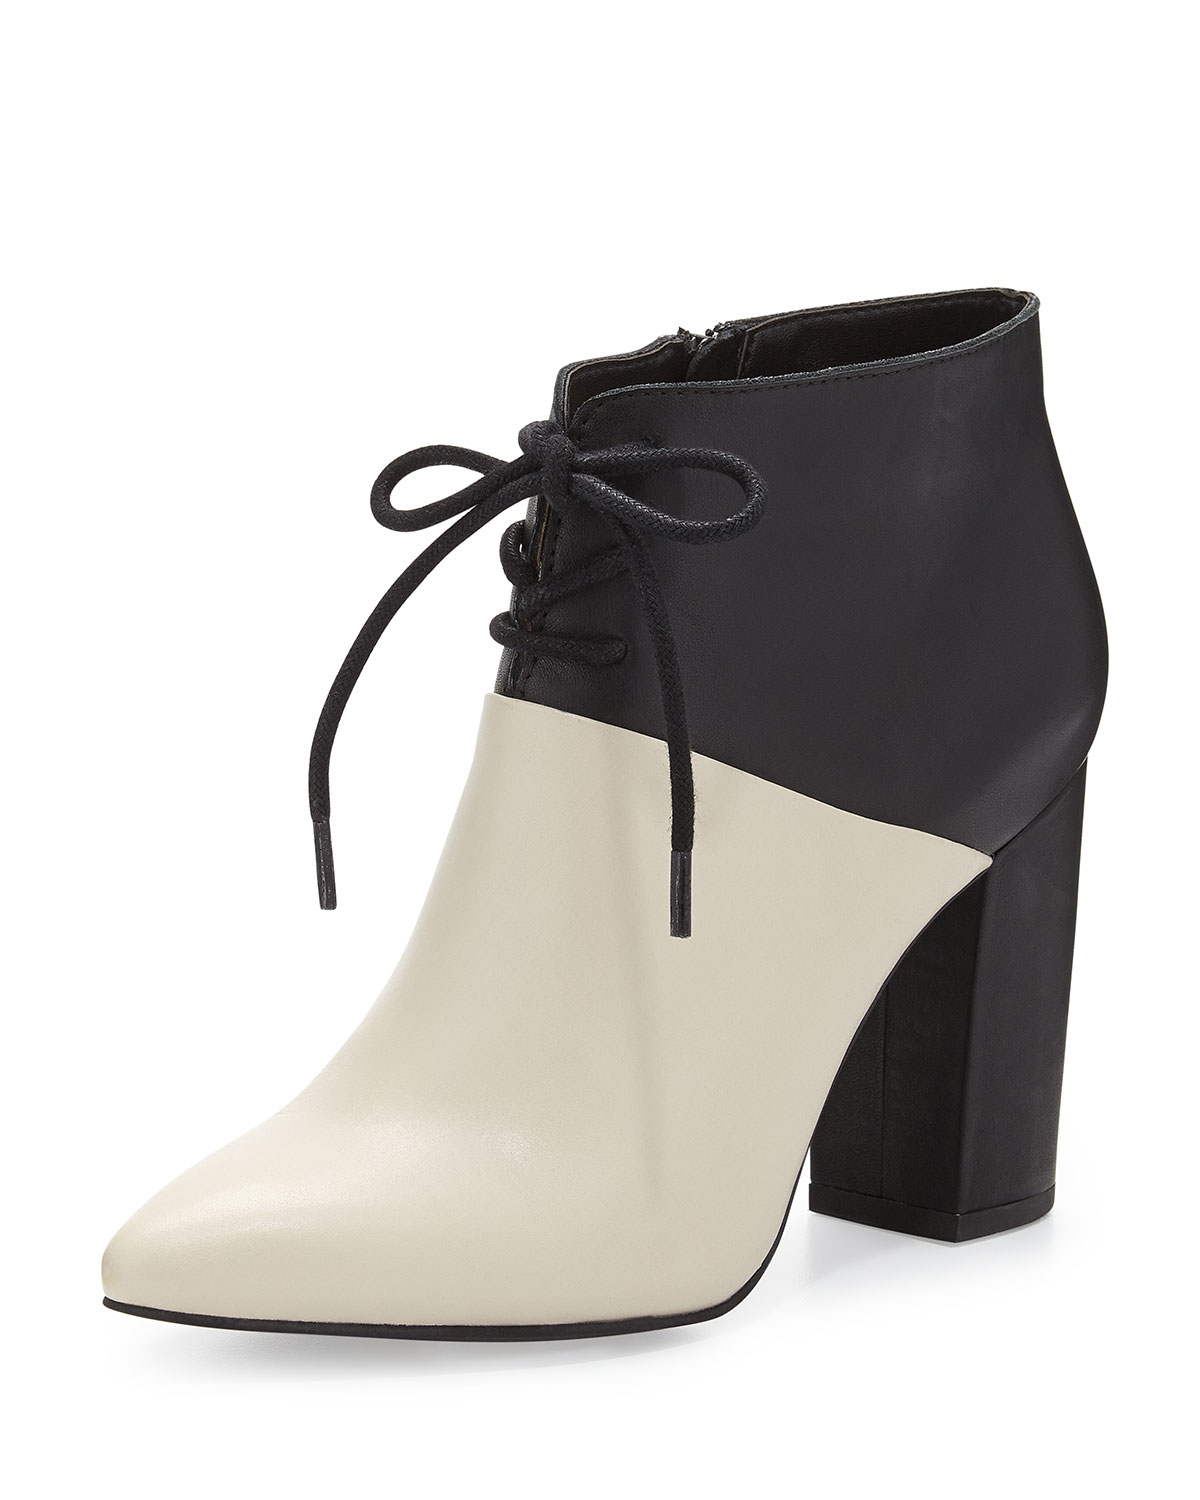 ff8f86f17277cb Seychelles Nonchalant Colorblock Leather Ankle Bootie in White - Lyst